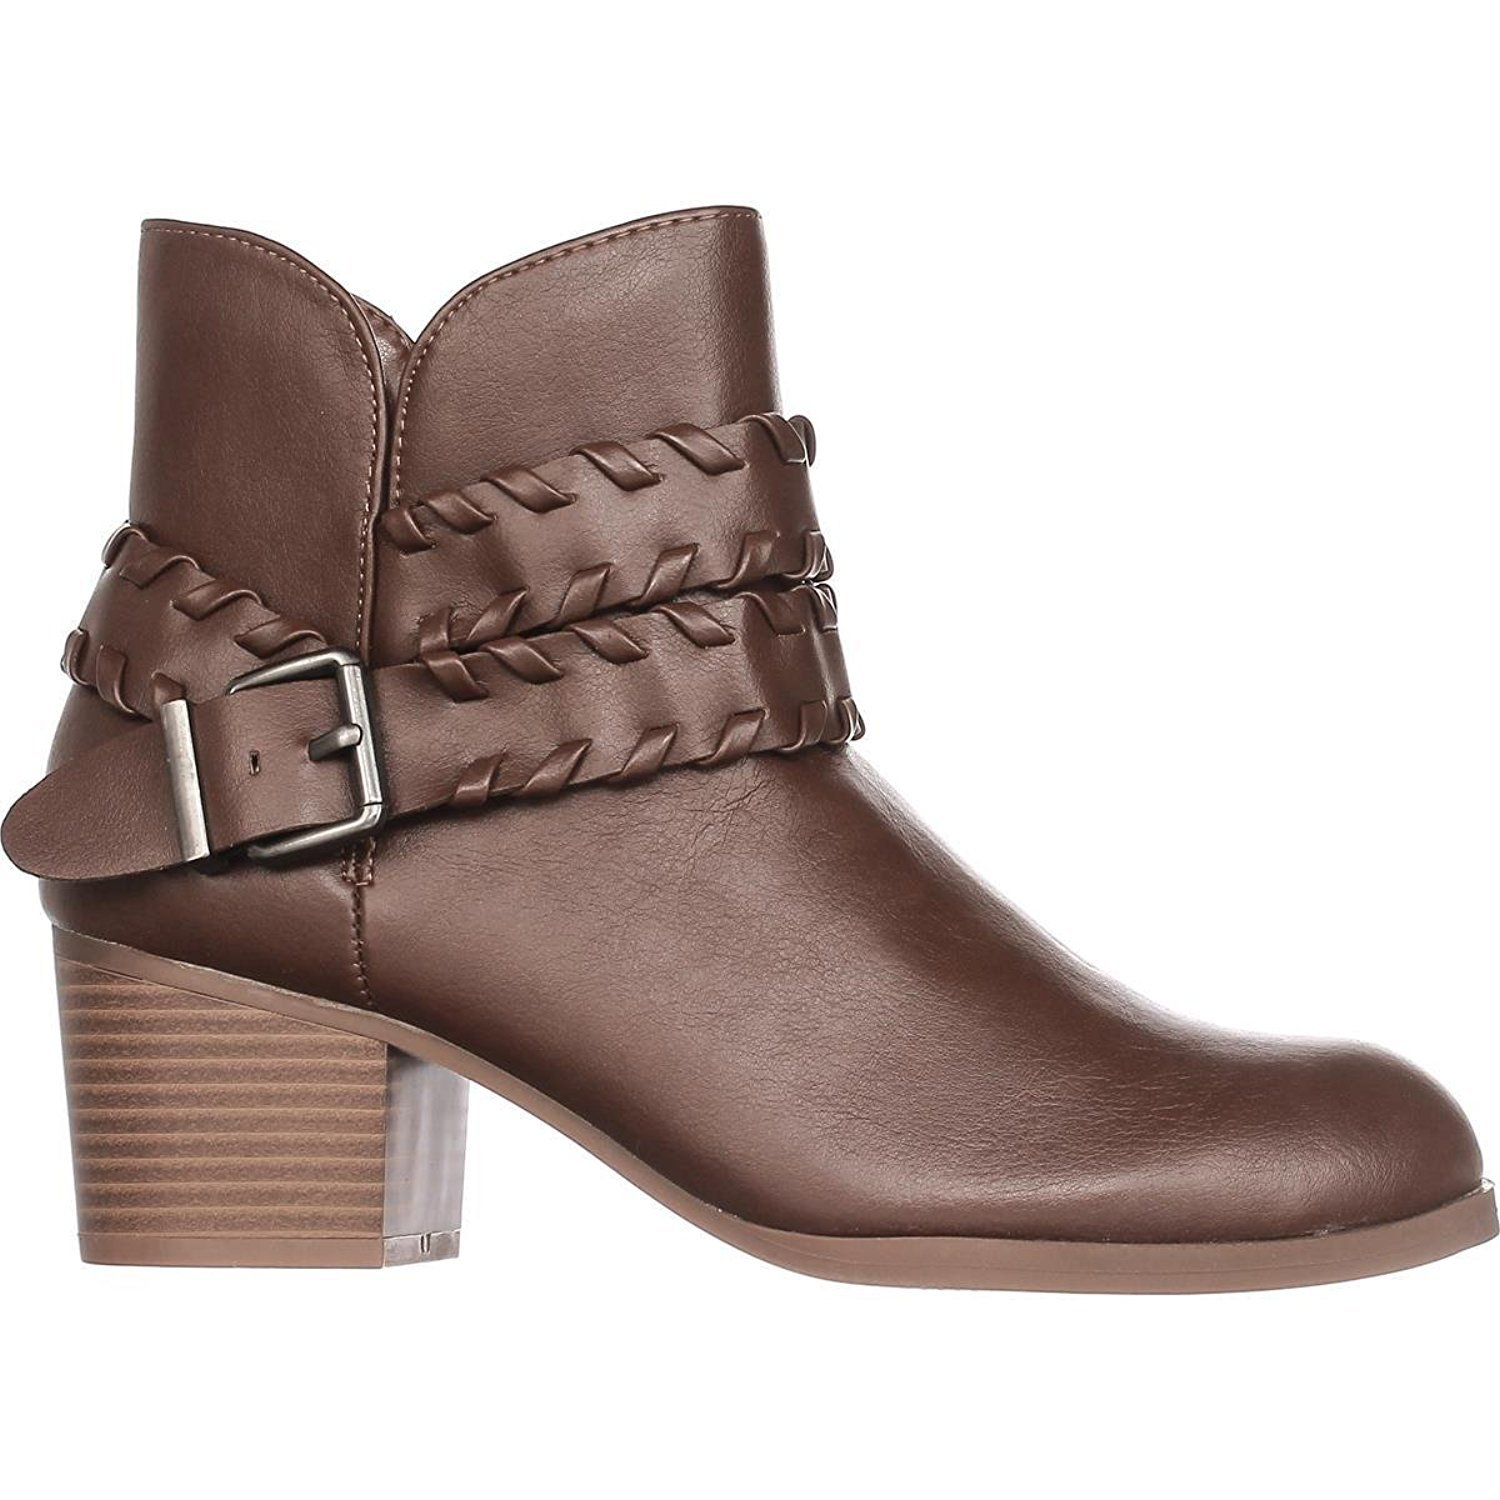 Style & Co. Womens Dyanaa Closed Toe Ankle Fashion Boots, Barrel, Size 7.0 by Style & Co. (Image #3)